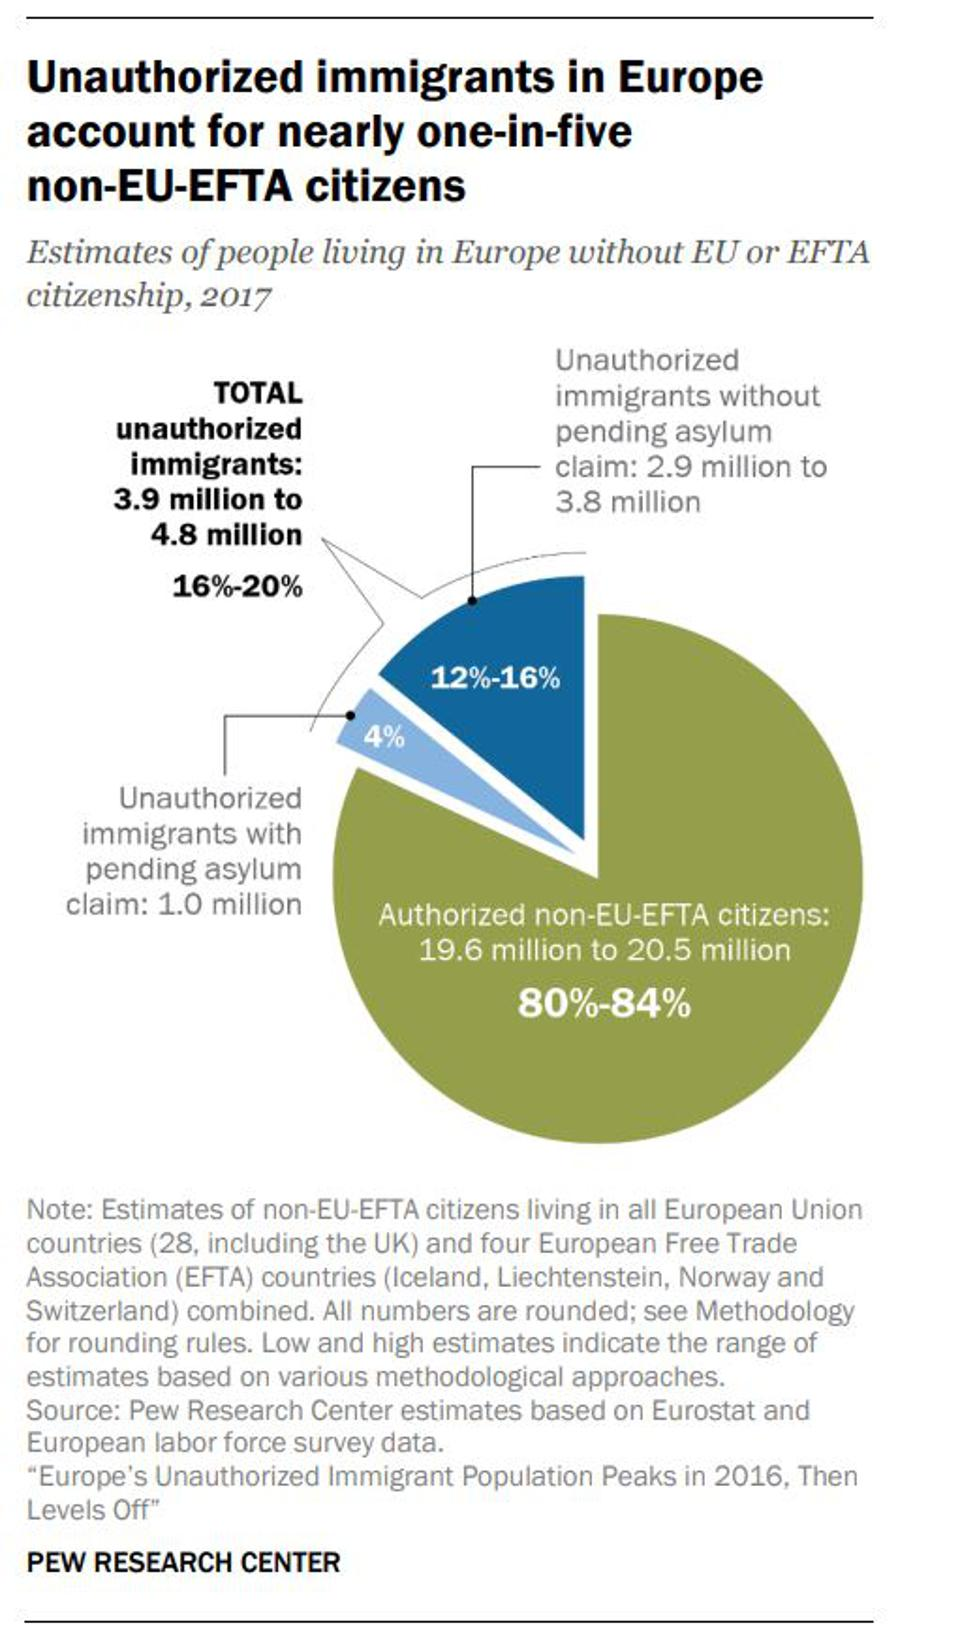 A Pew chart showing the relative authorized and non-authorized immigrant population of Europe.